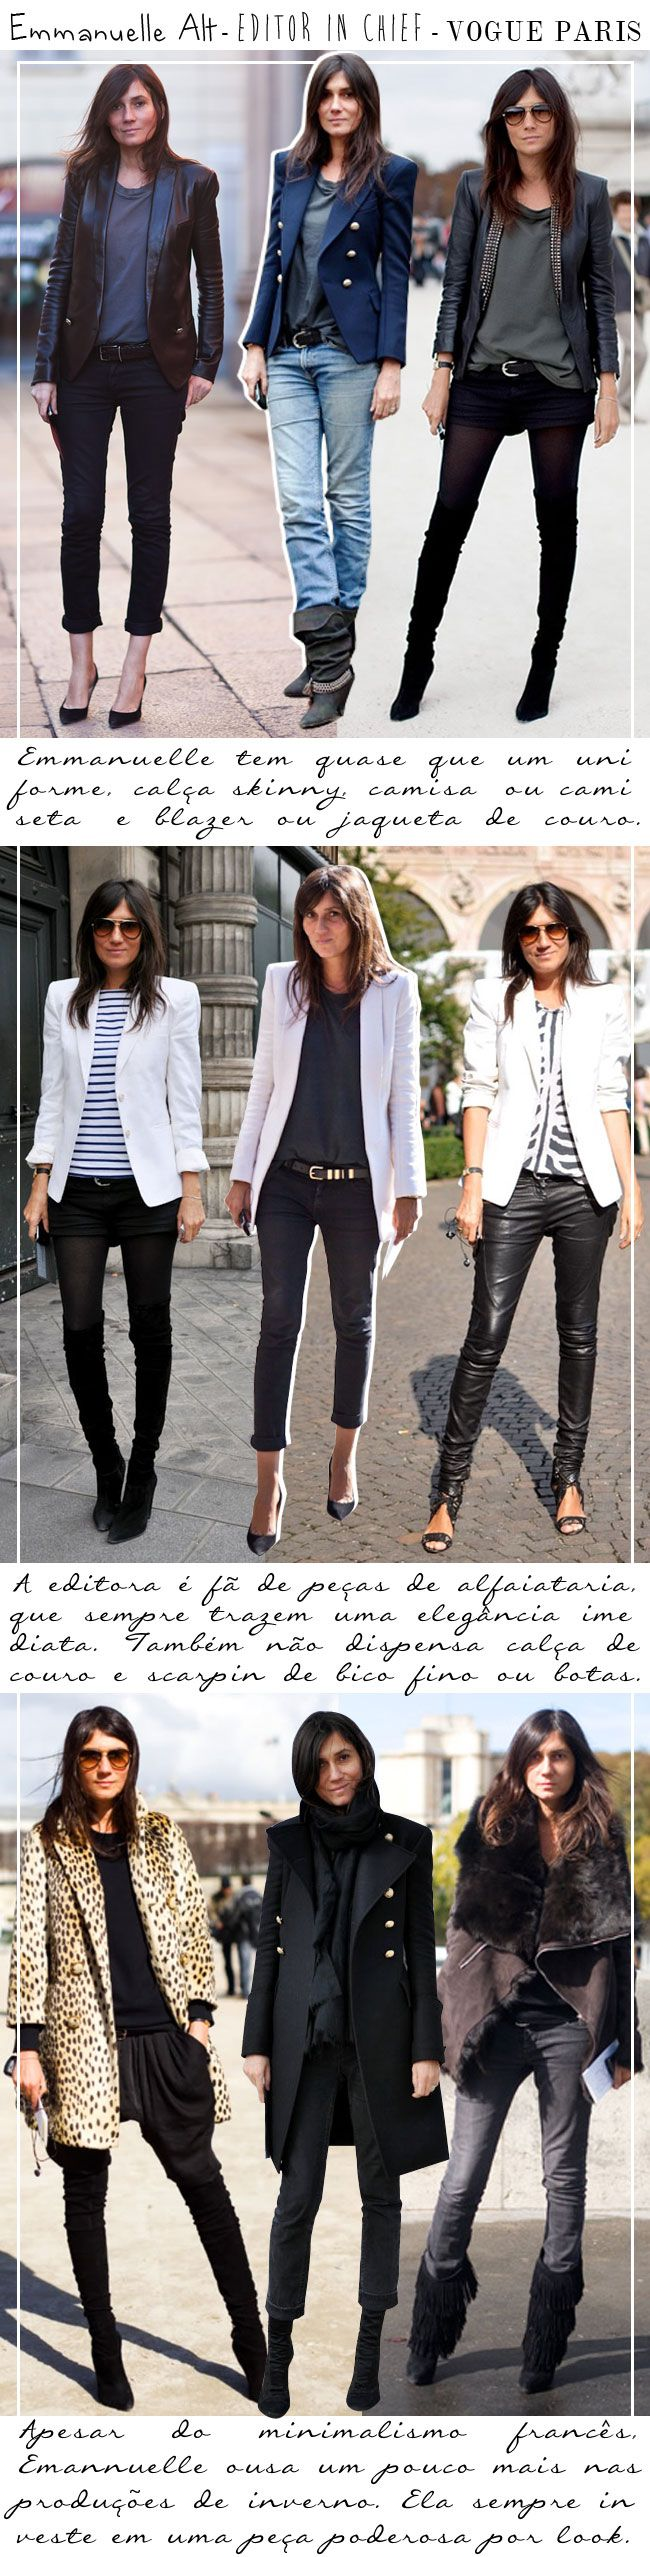 emmanuelle alt | french vogue | obsessed with her effortlessly chic parisian look | not-too-skinny skinny jeans (peg leg not tapered) paired with cool loose-fitting tees, tanks, blazers and leather jackets